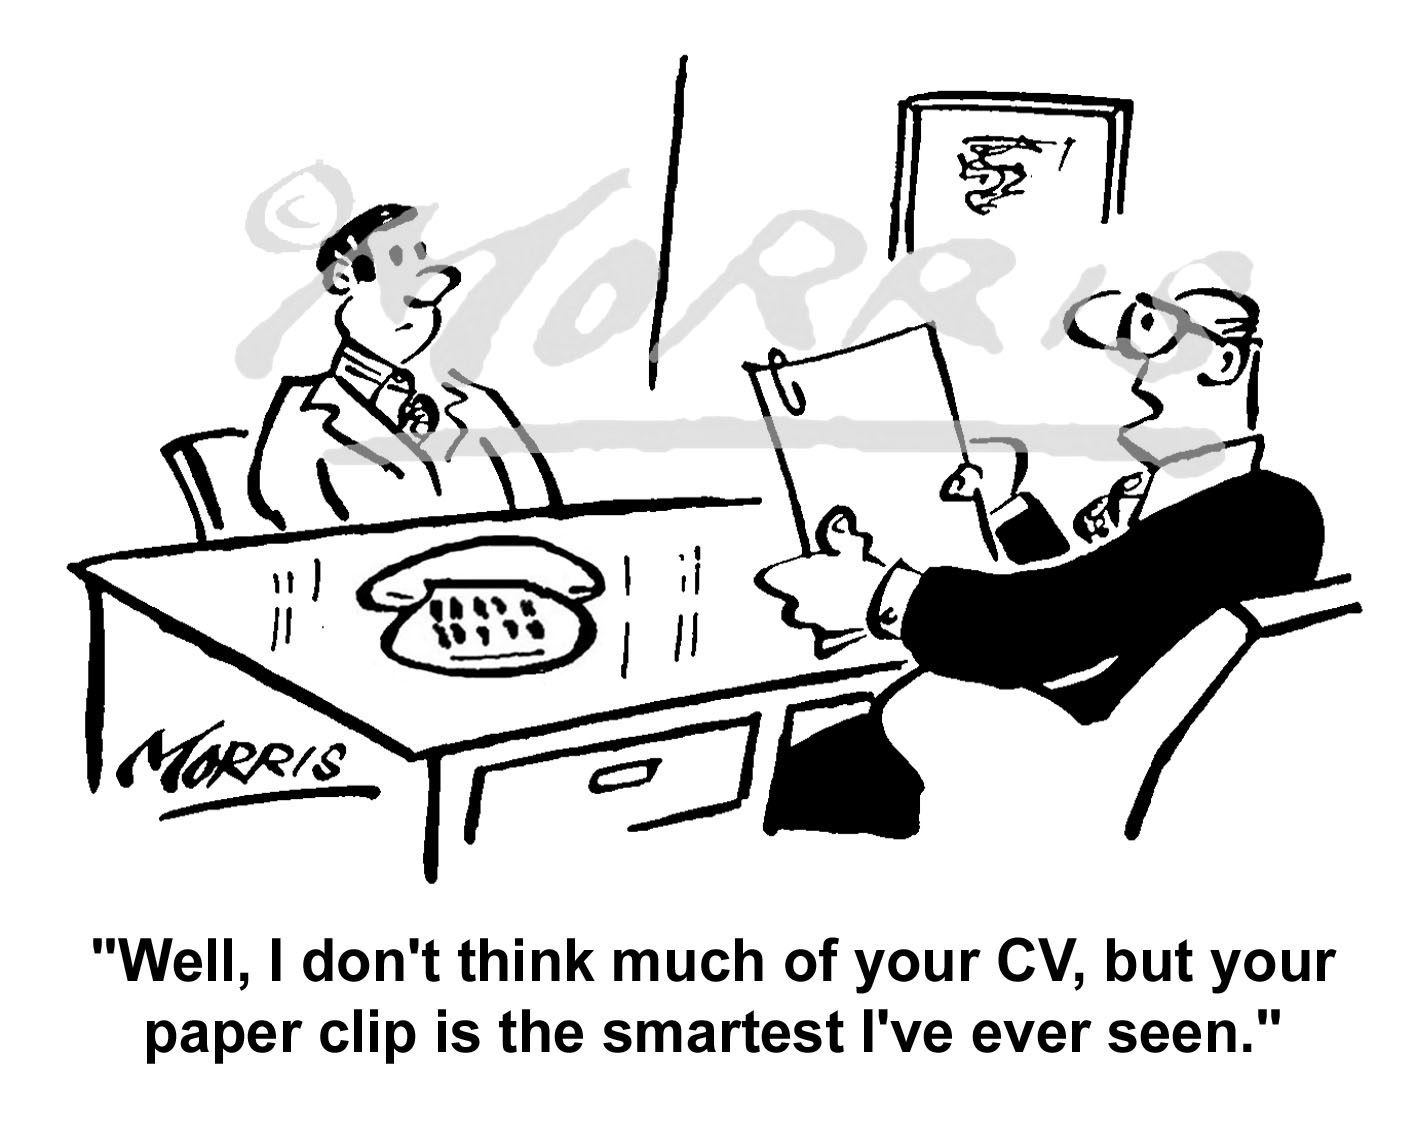 Job interview cartoon, resume comic Ref: 1682bw